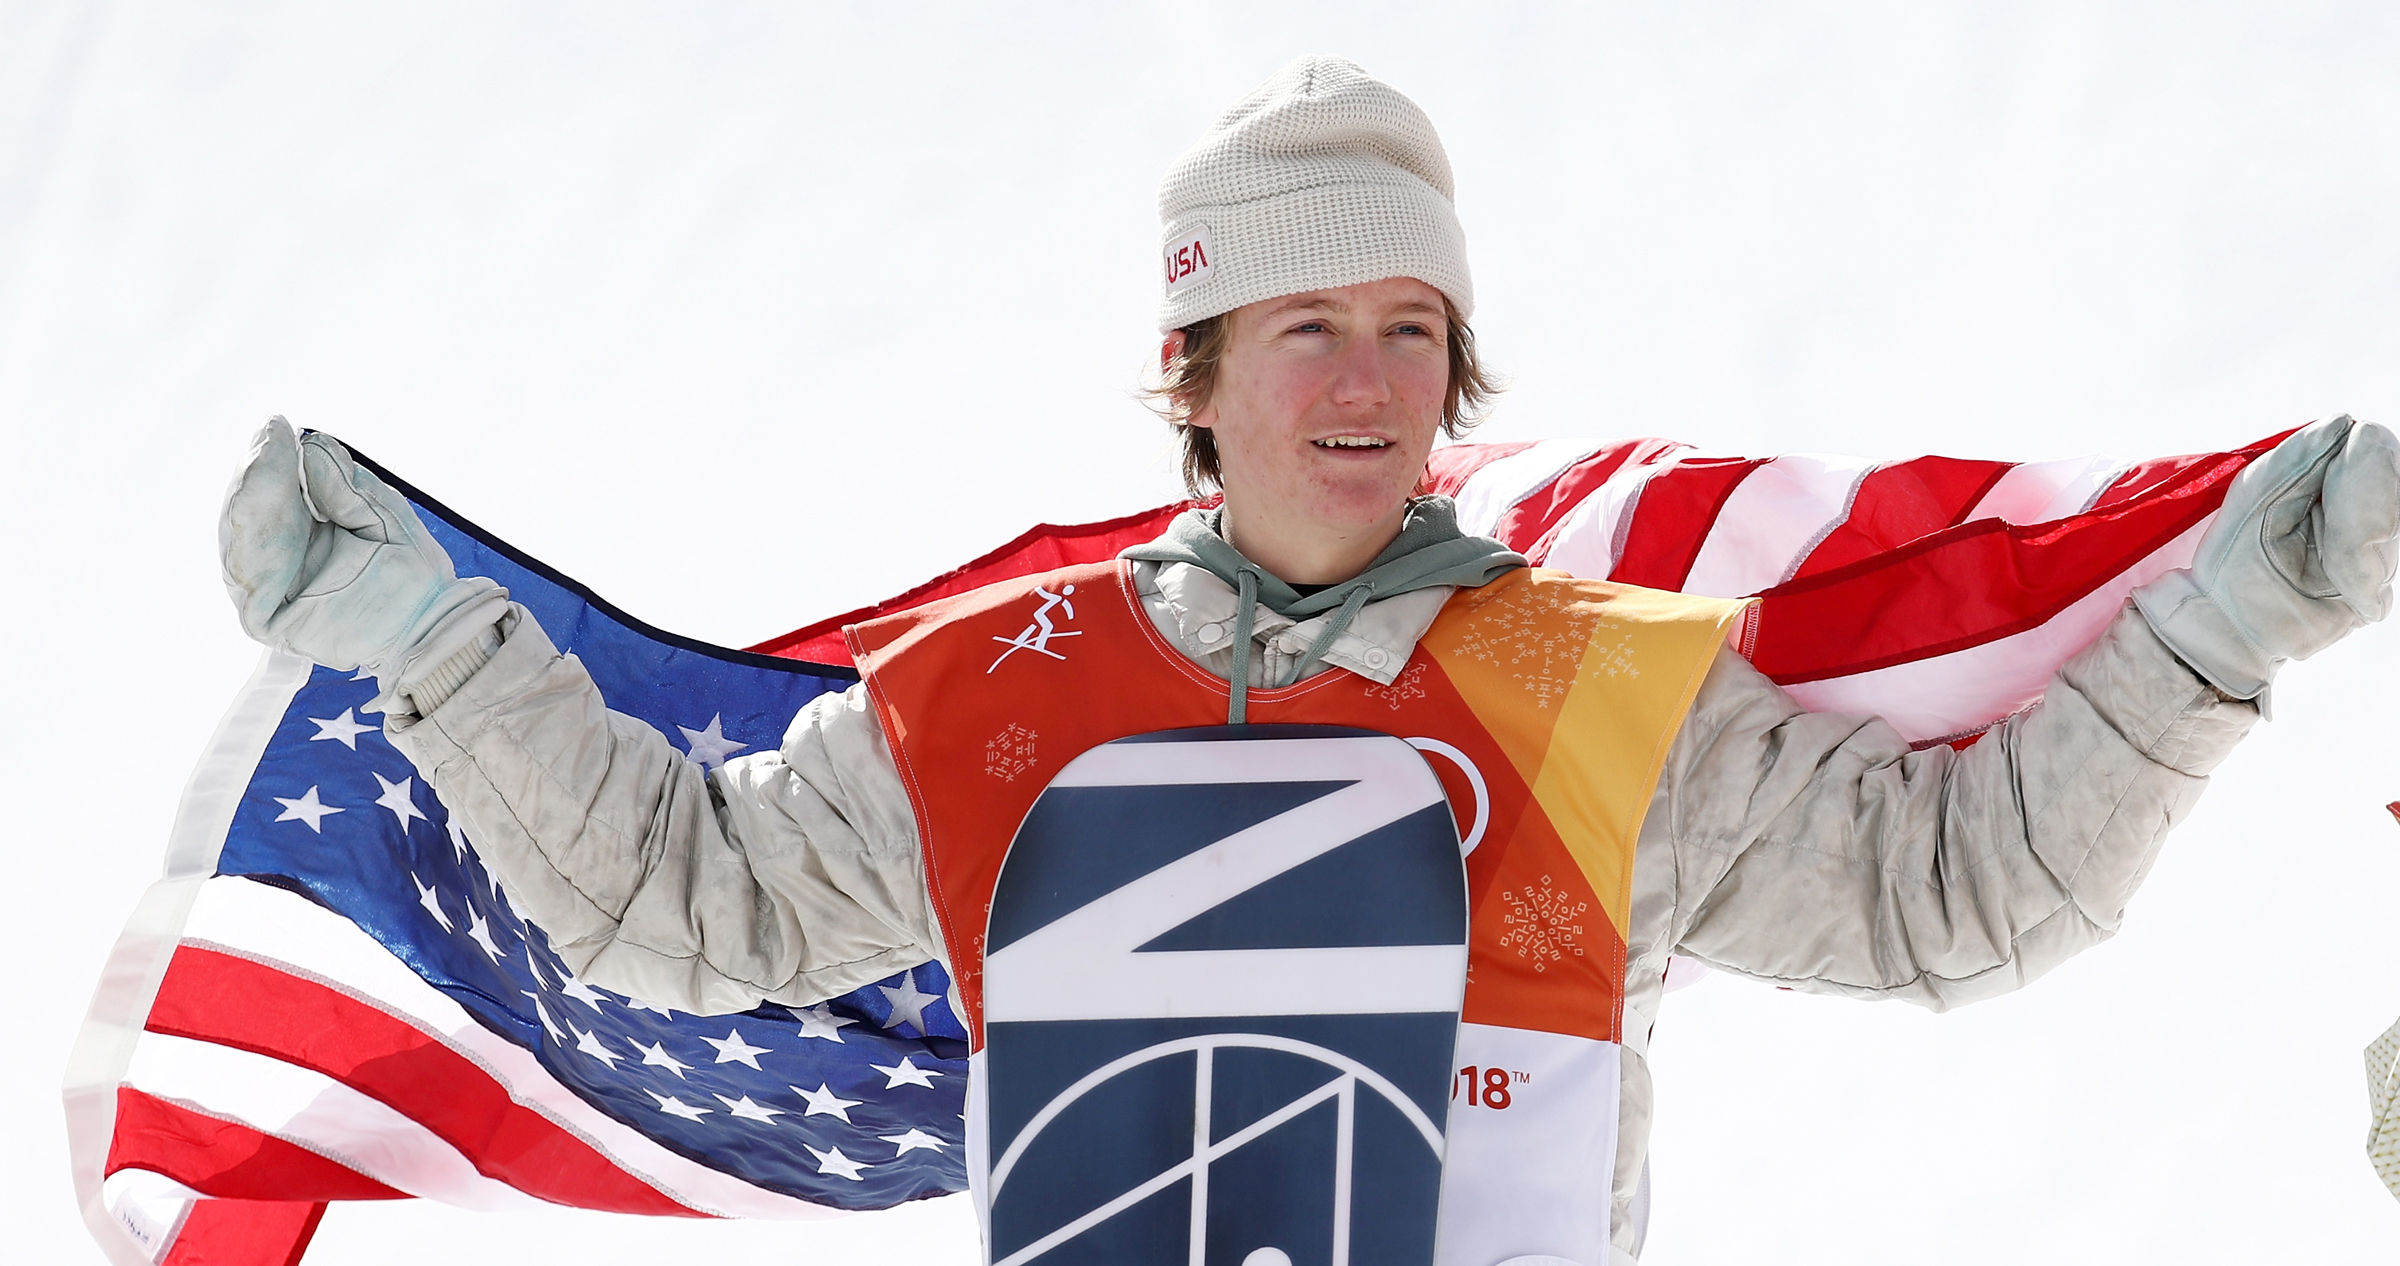 Red Gerard won the gold medal in slopestyle snowboarding Sunday at the 2018 Olympic Winter Games at Phoenix Snow Park in Pyeongchang-gun, South Korea. (Getty Images - Clive Rose)